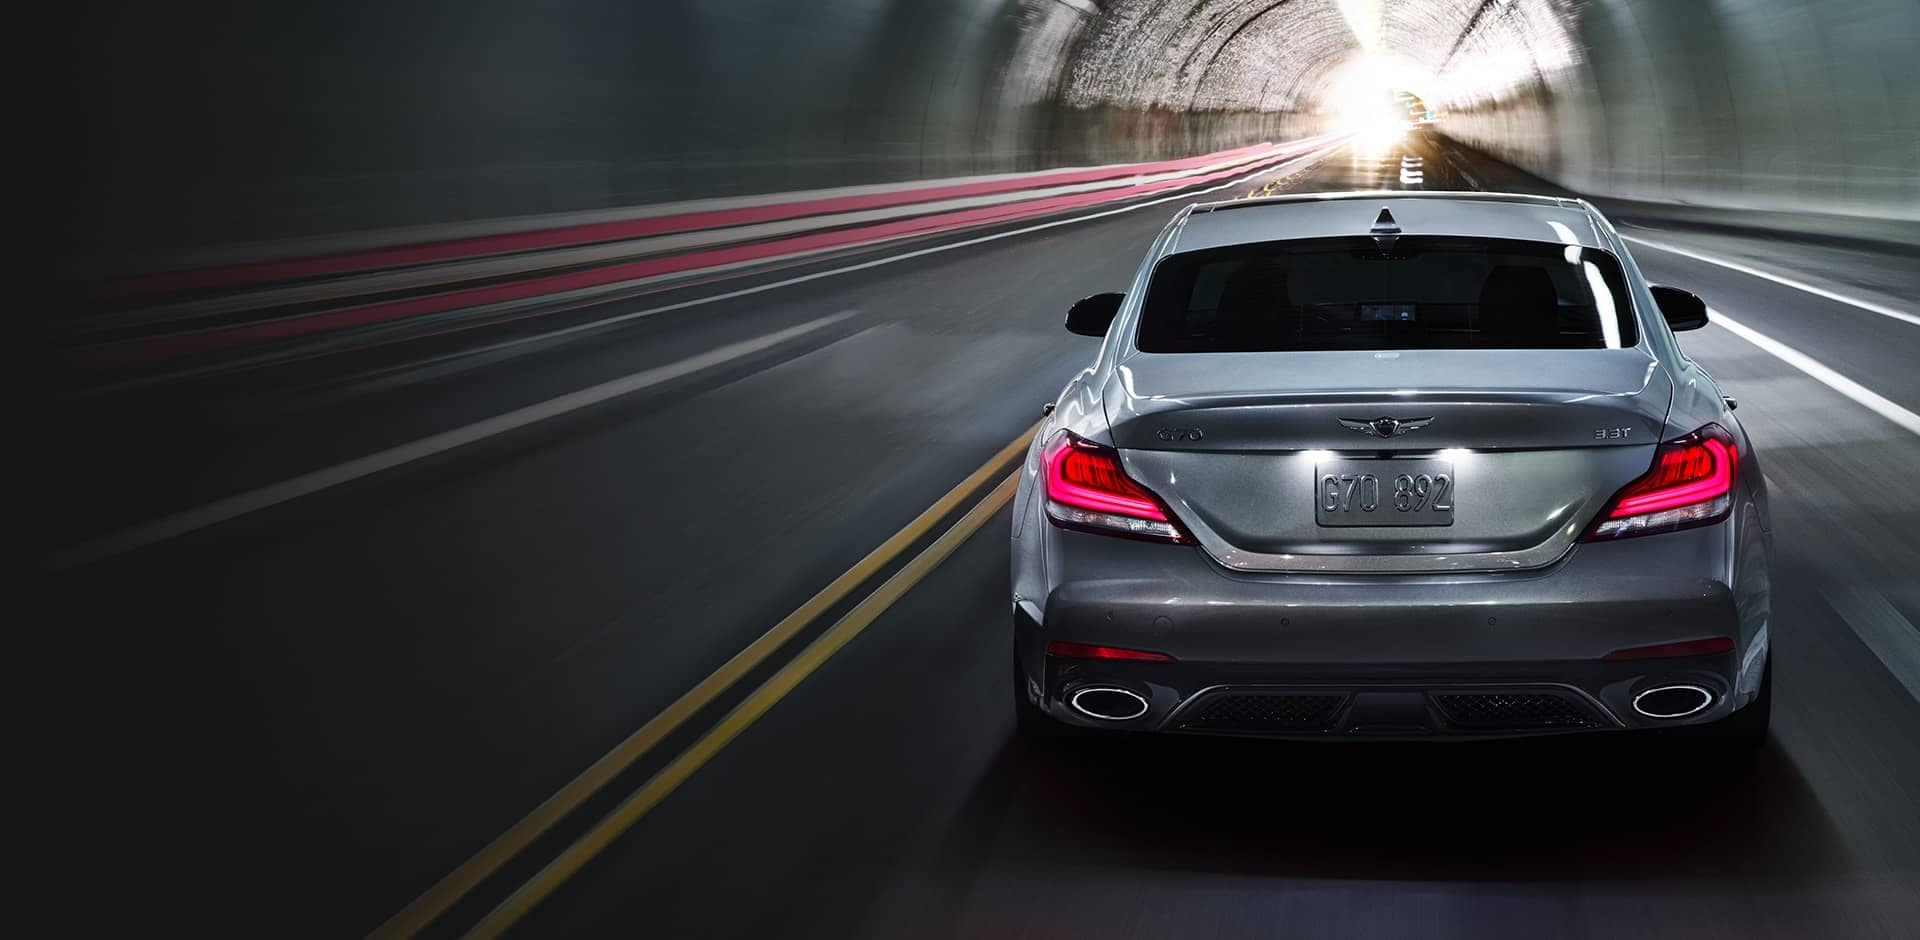 silver G70 driving through highway tunnel